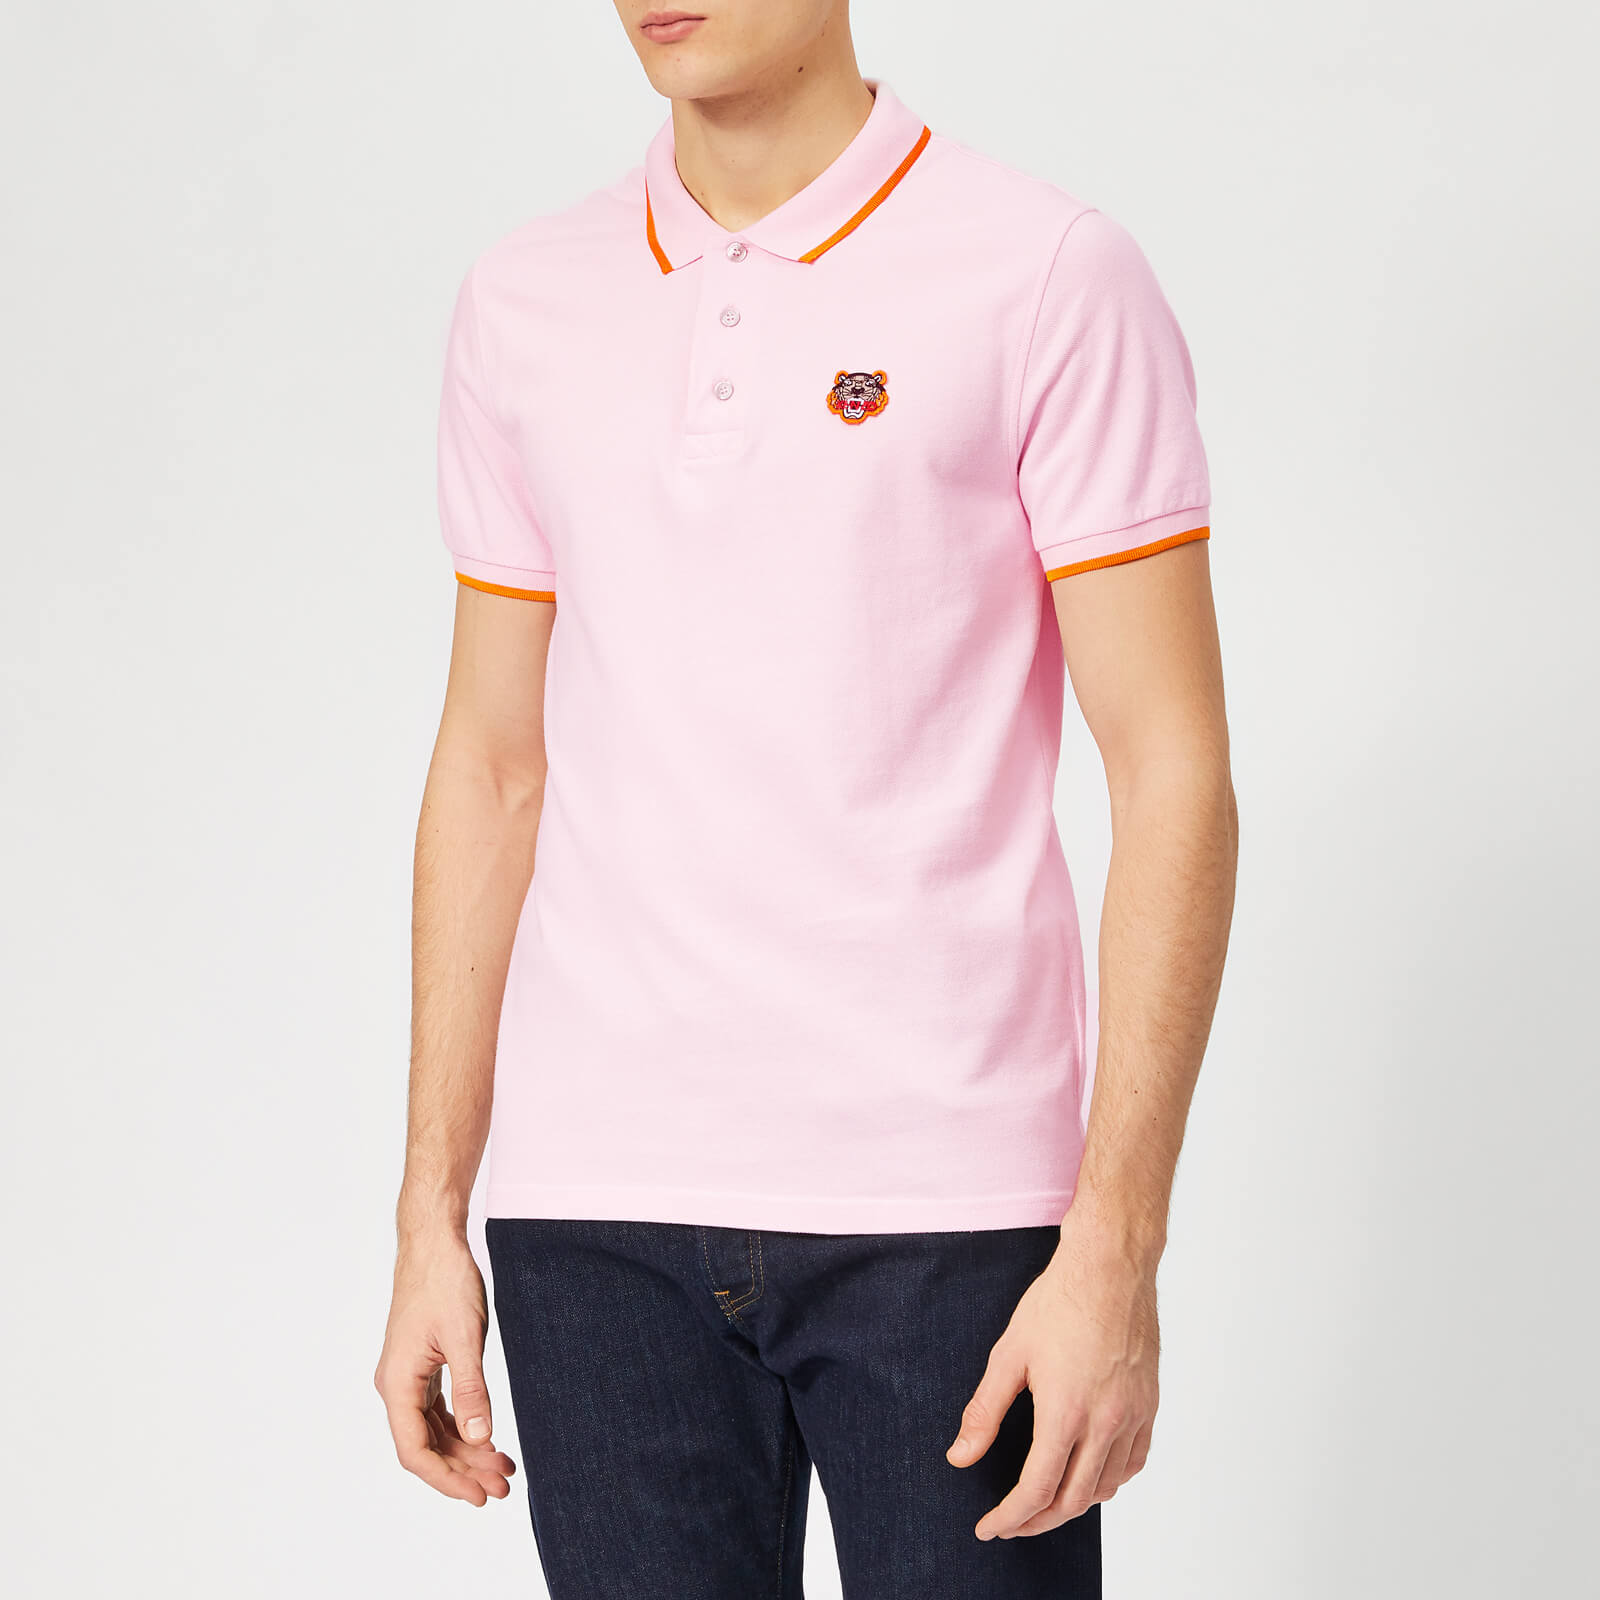 a876ae06d8 KENZO Men's Tipped Polo Shirt - Pastel Pink - Free UK Delivery over £50